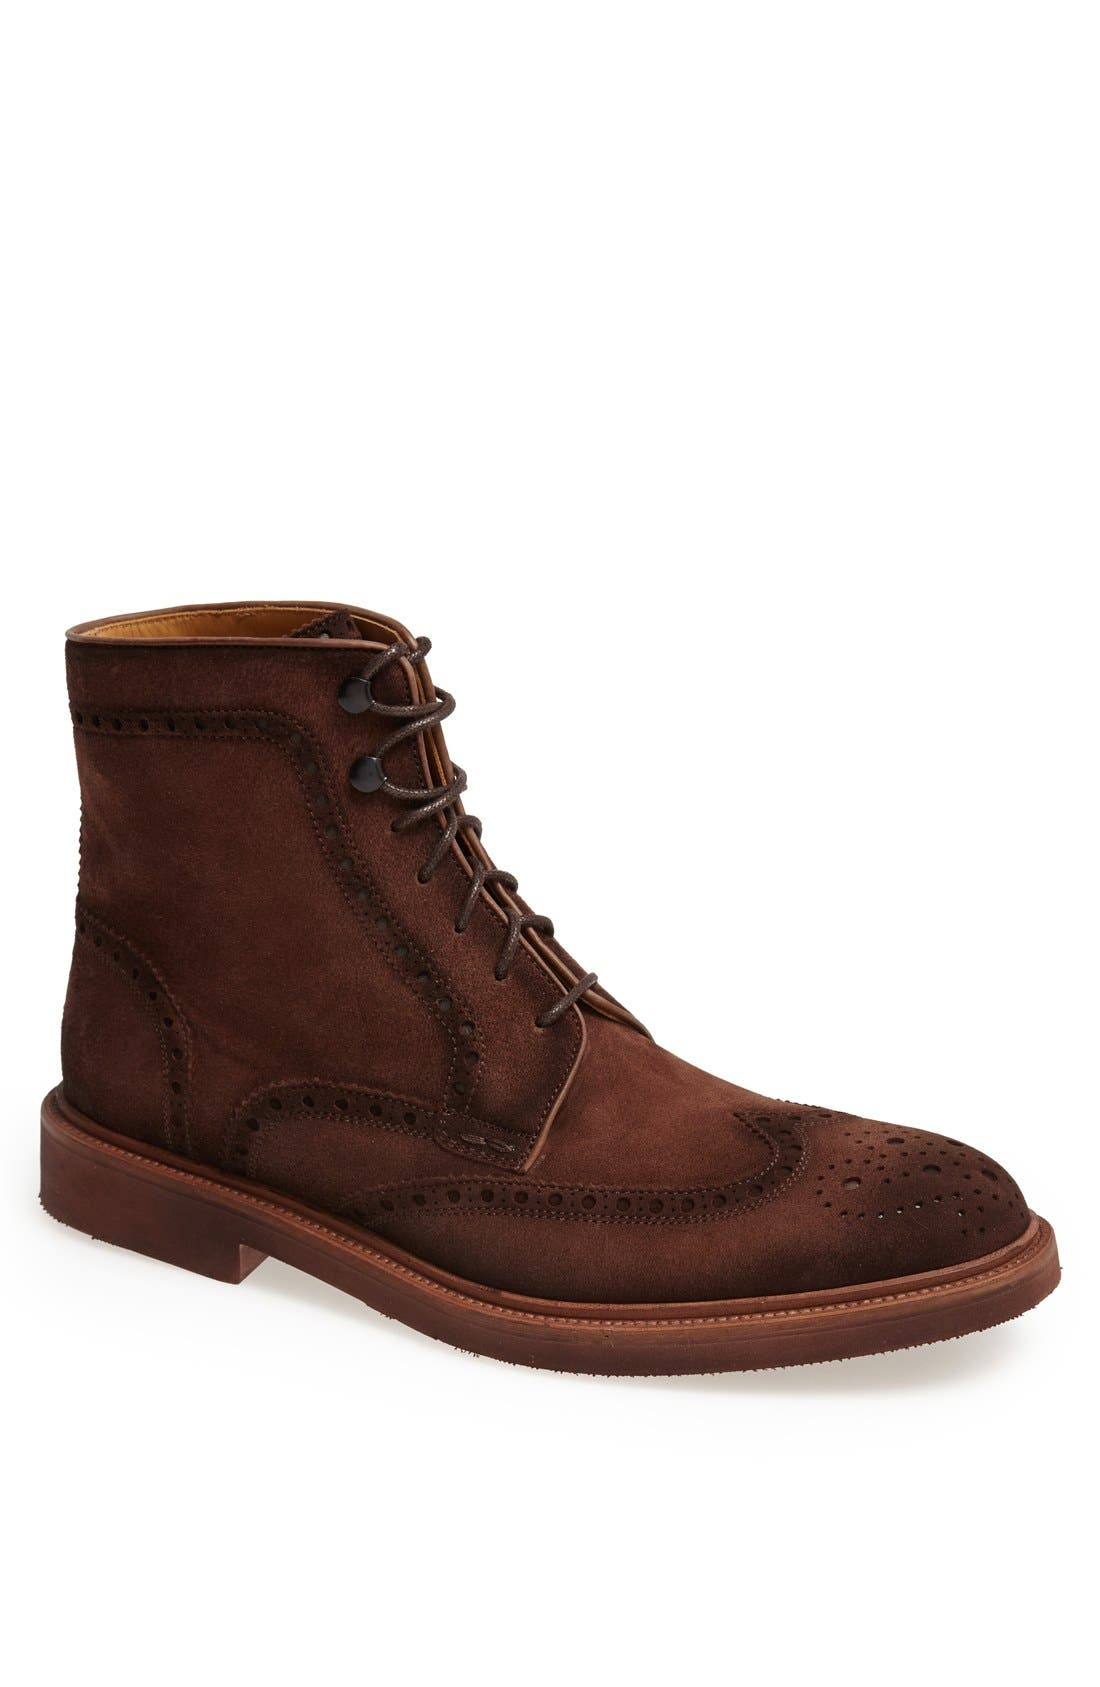 Alternate Image 1 Selected - Magnanni 'Neto' Wingtip Boot